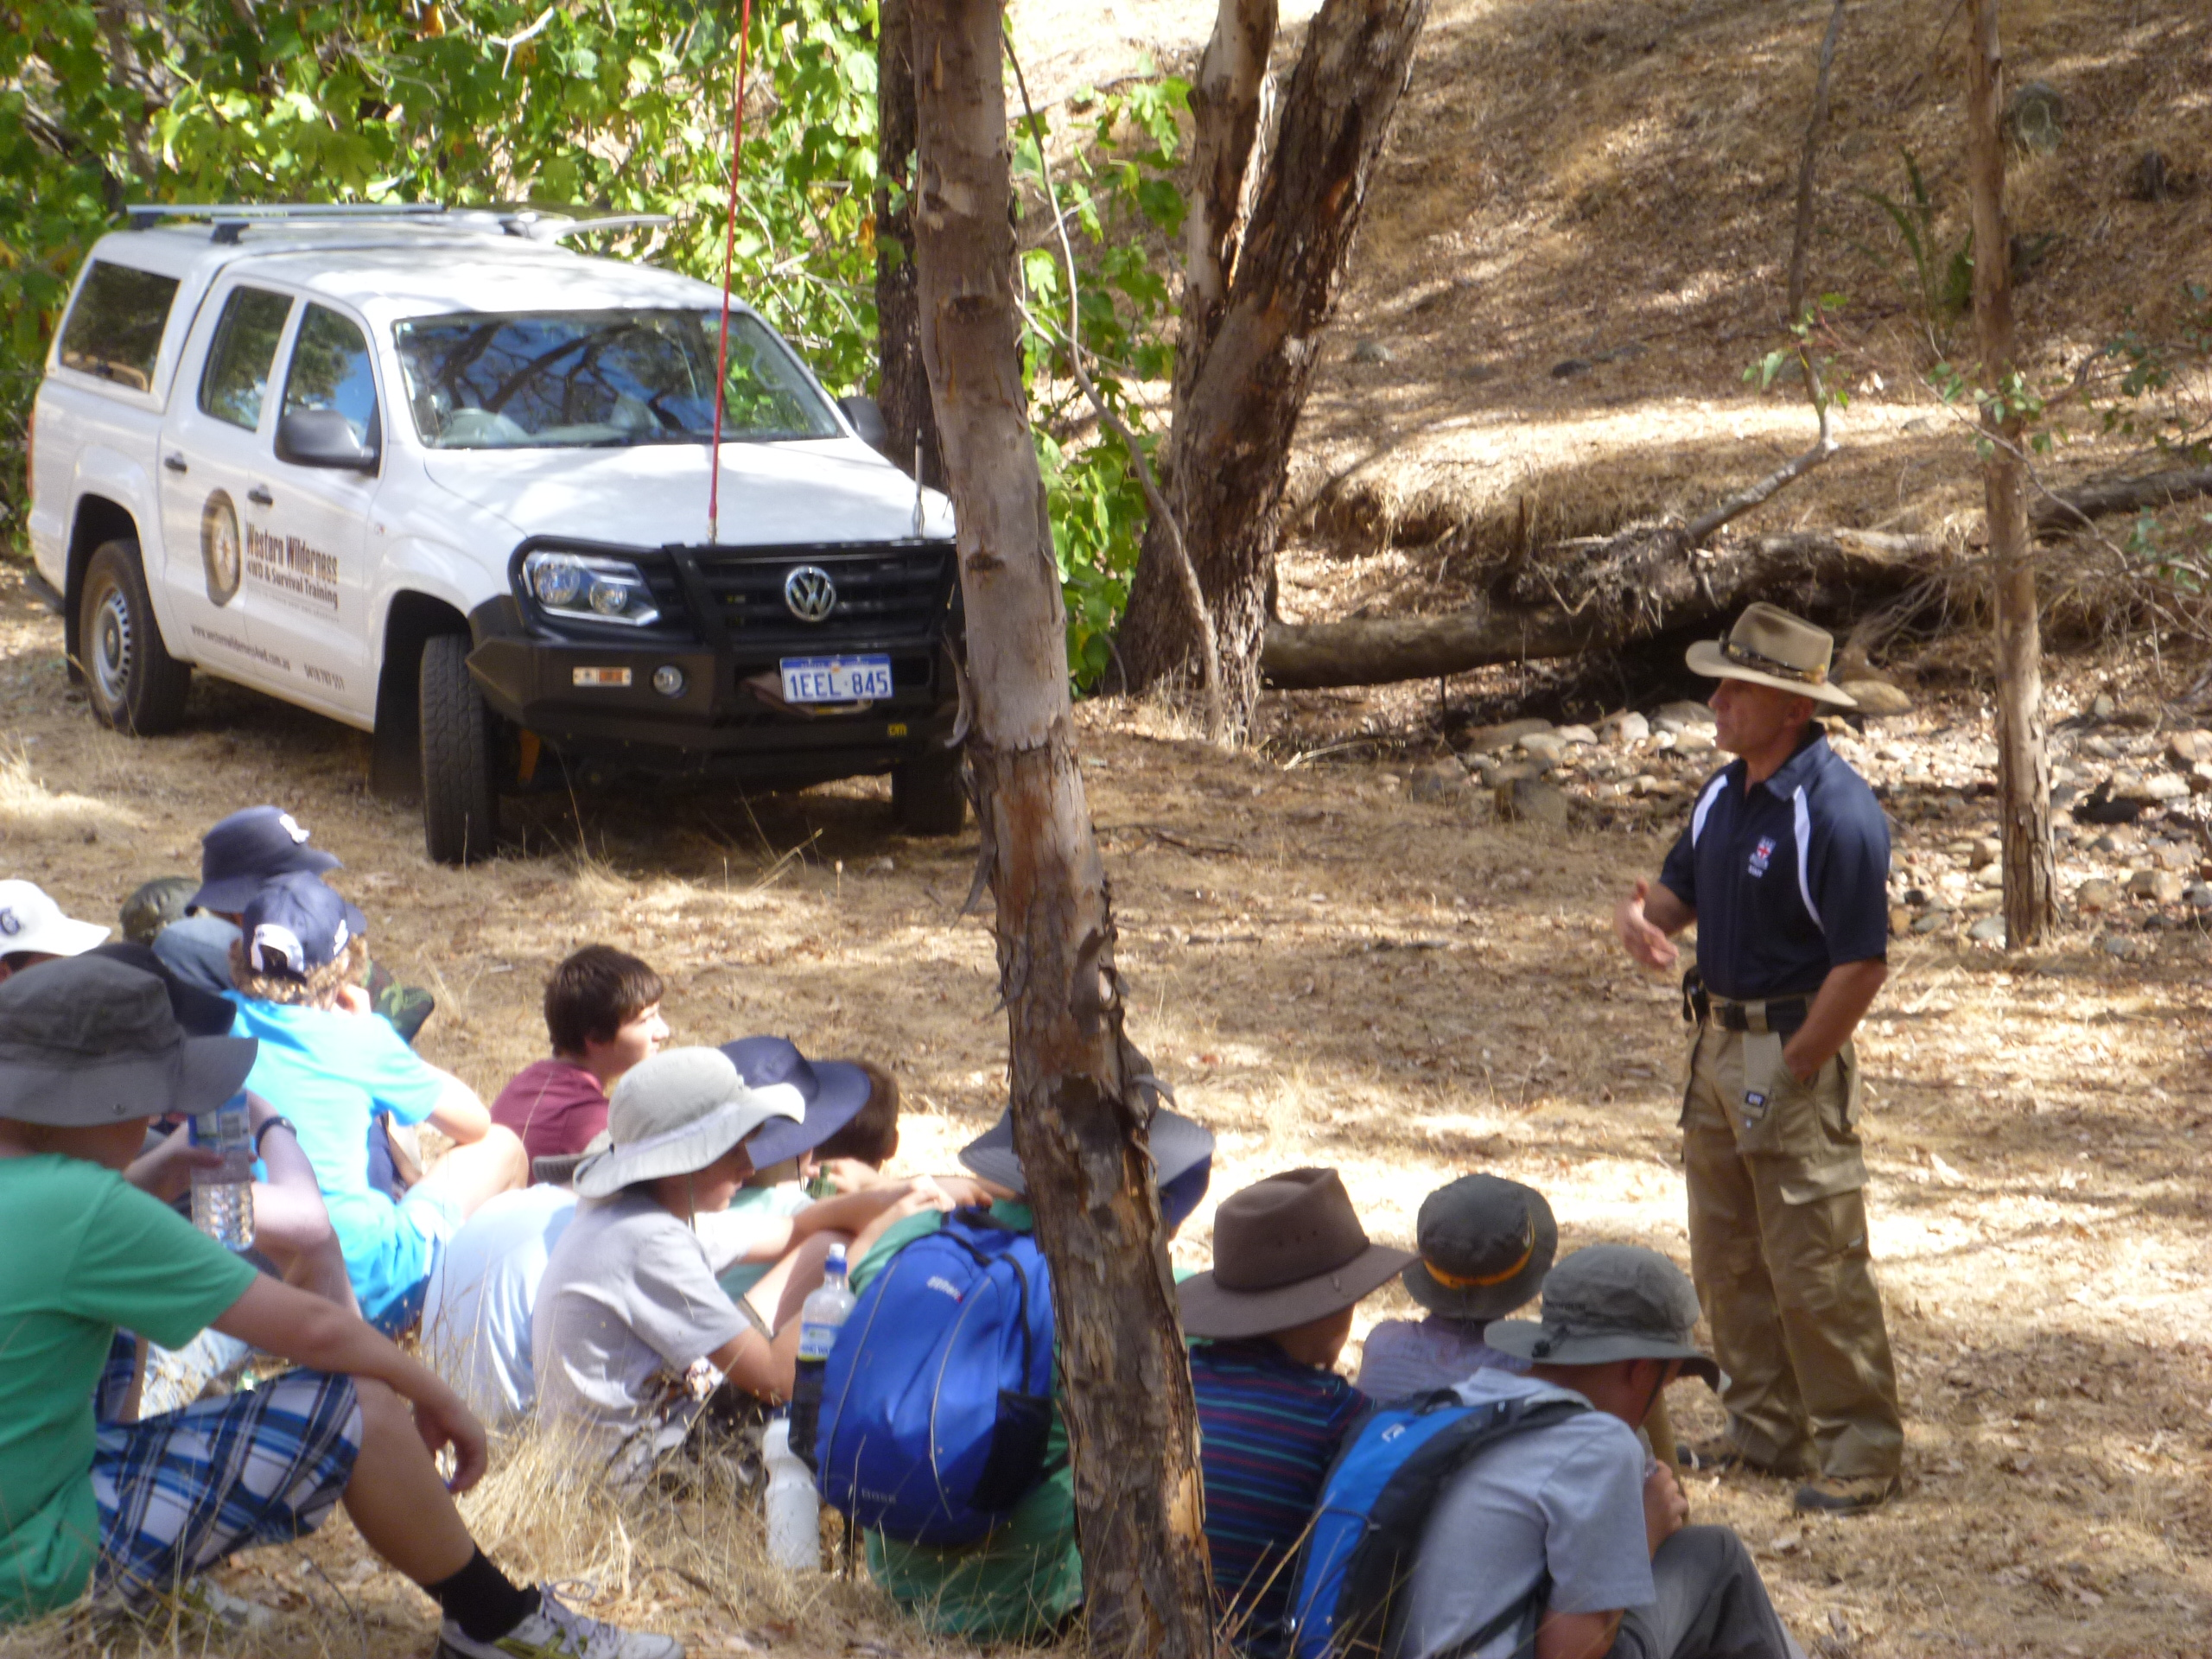 western wilderness 4wd and survival training4wd training course